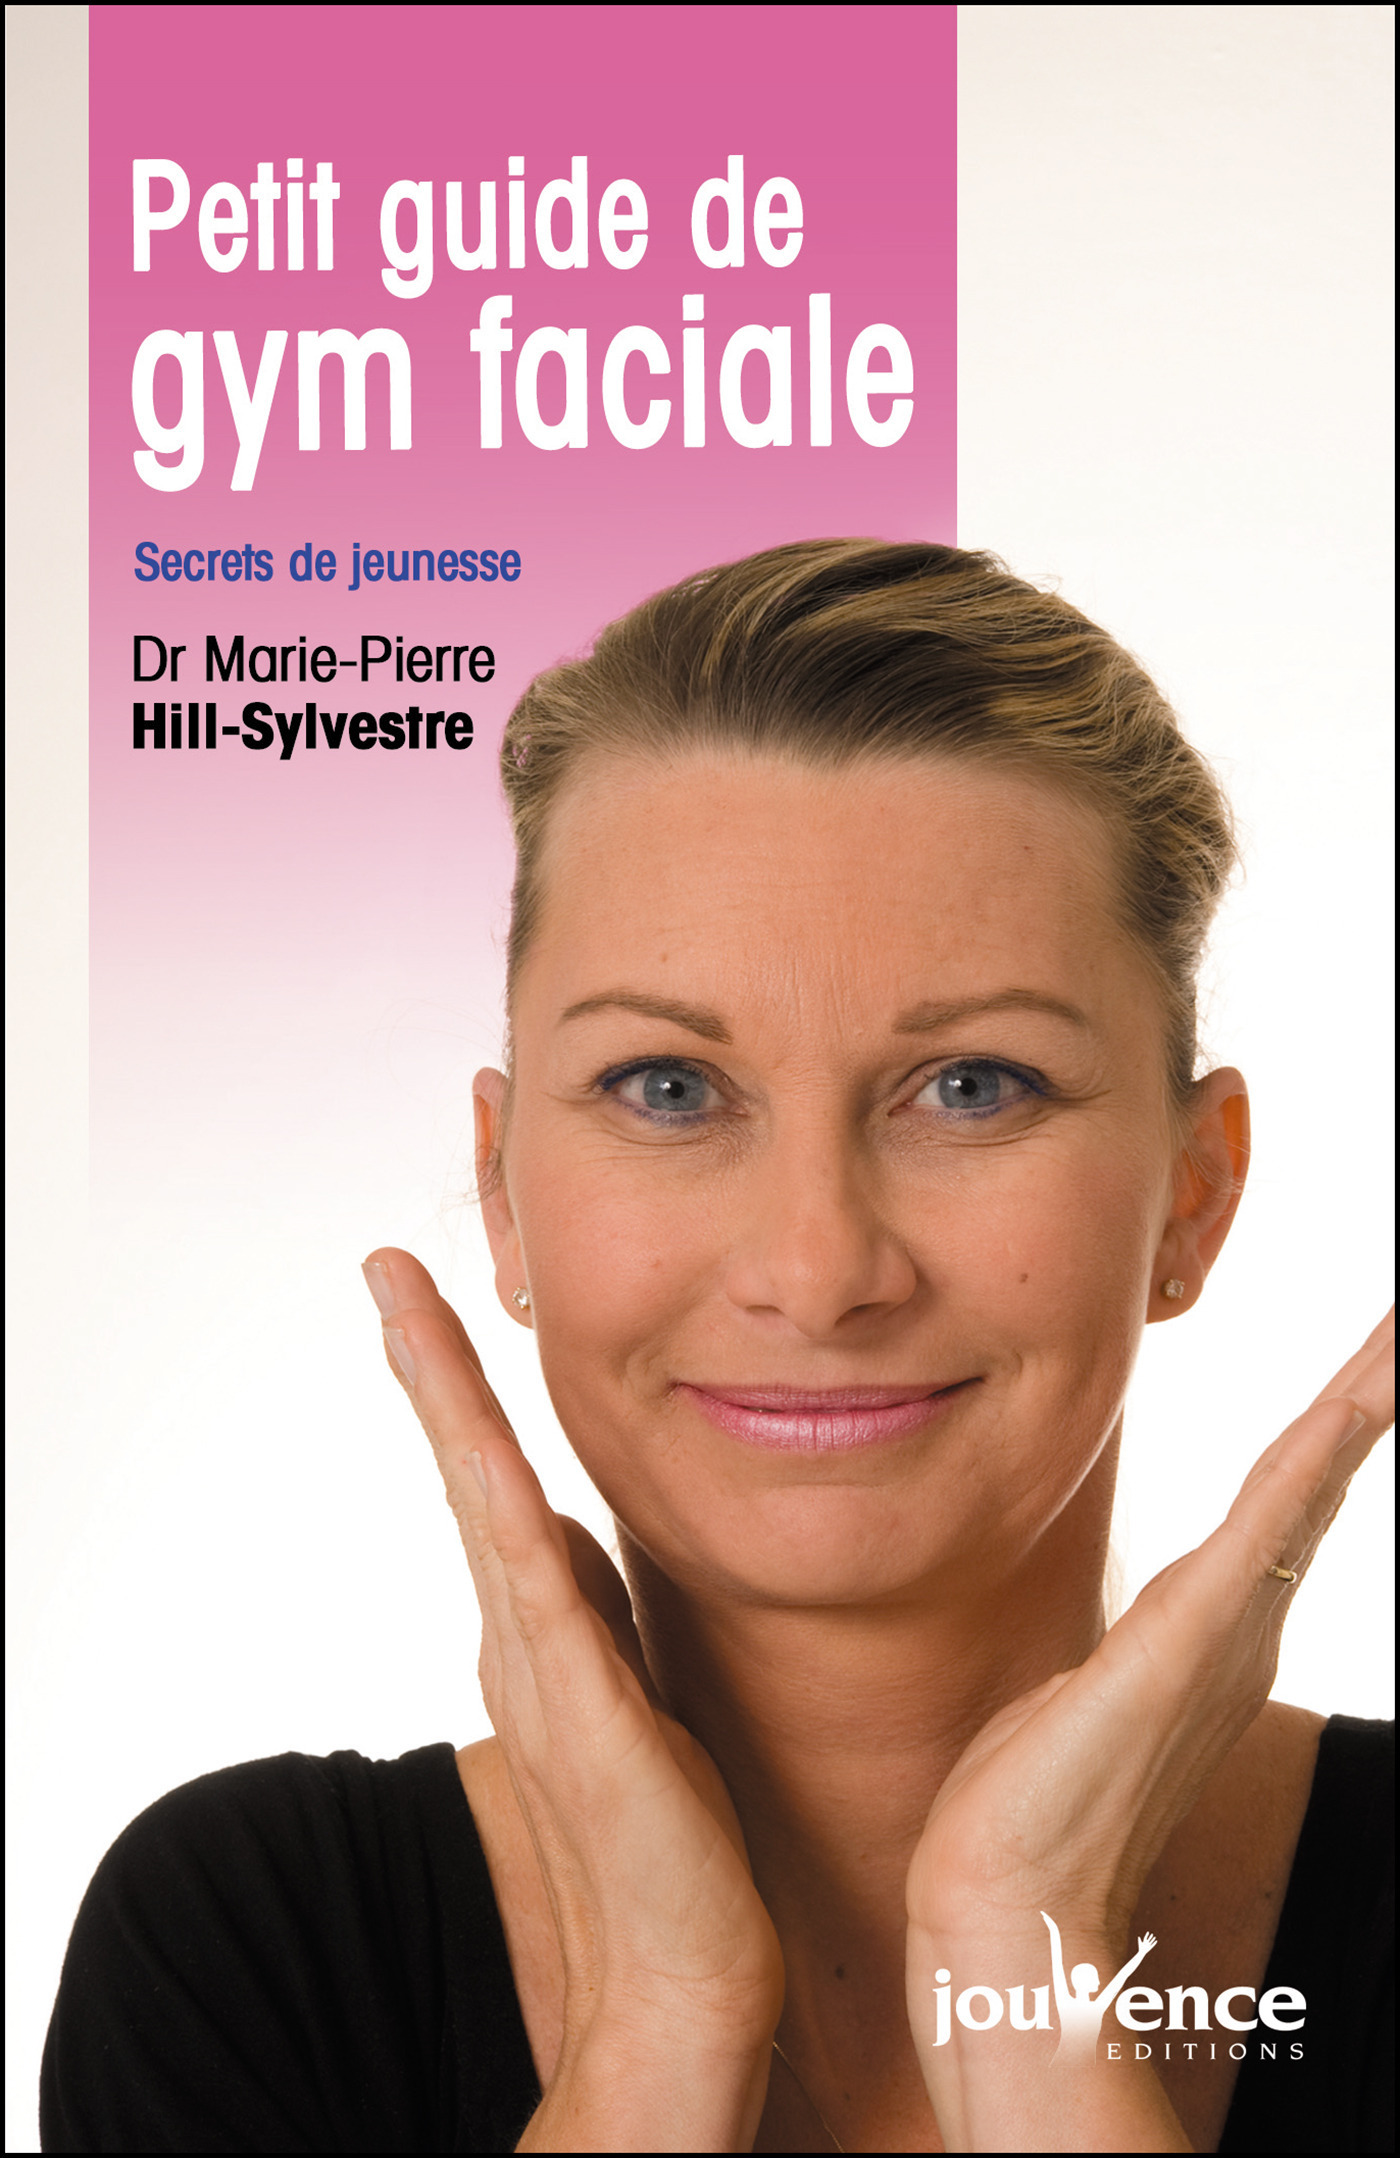 Petit guide de gym faciale  - Marie-Pierre Hill-Sylvestre